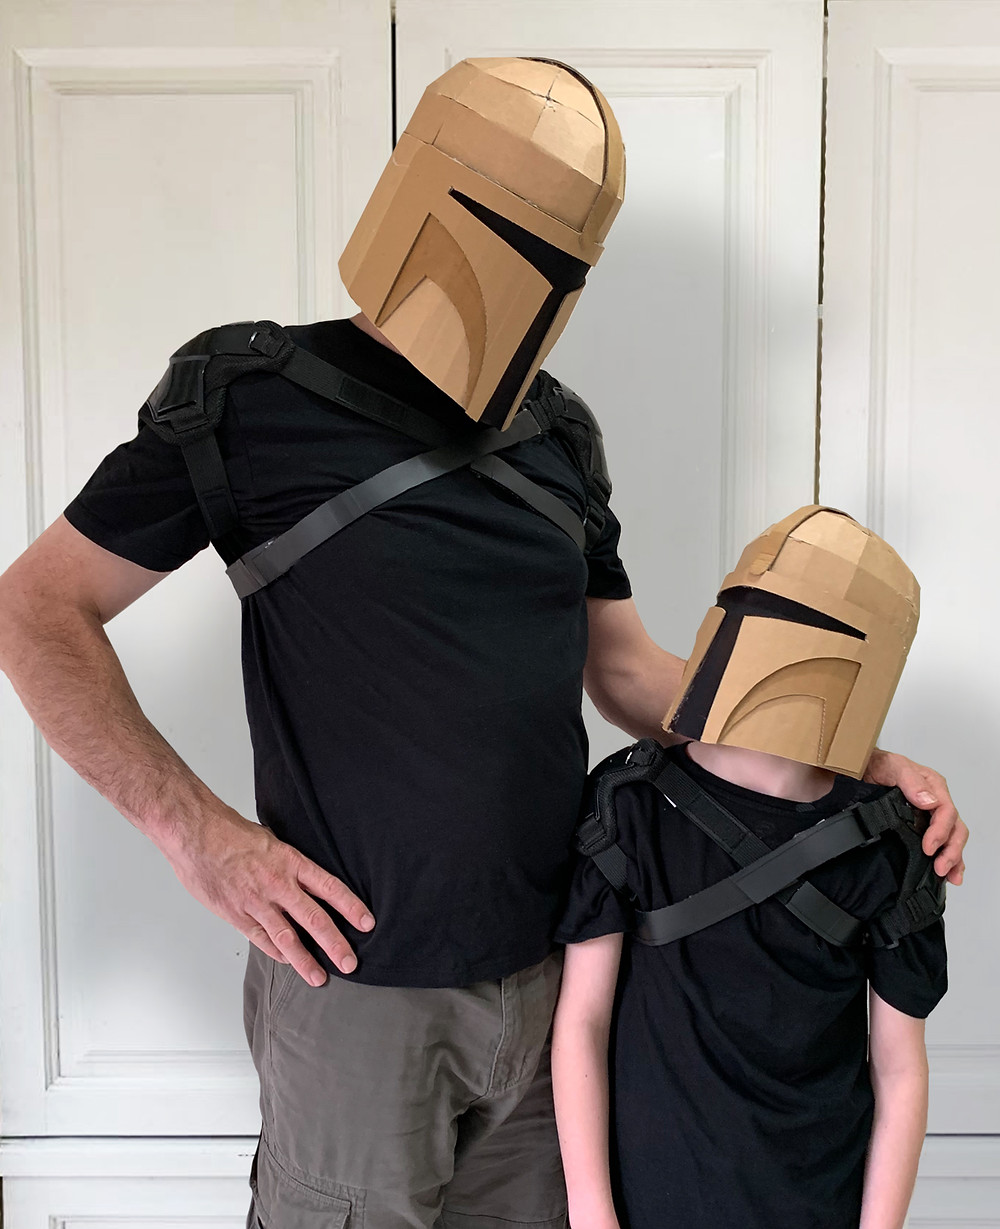 Make your own cardboard Bounty Hunter Helmet with this downloadable template